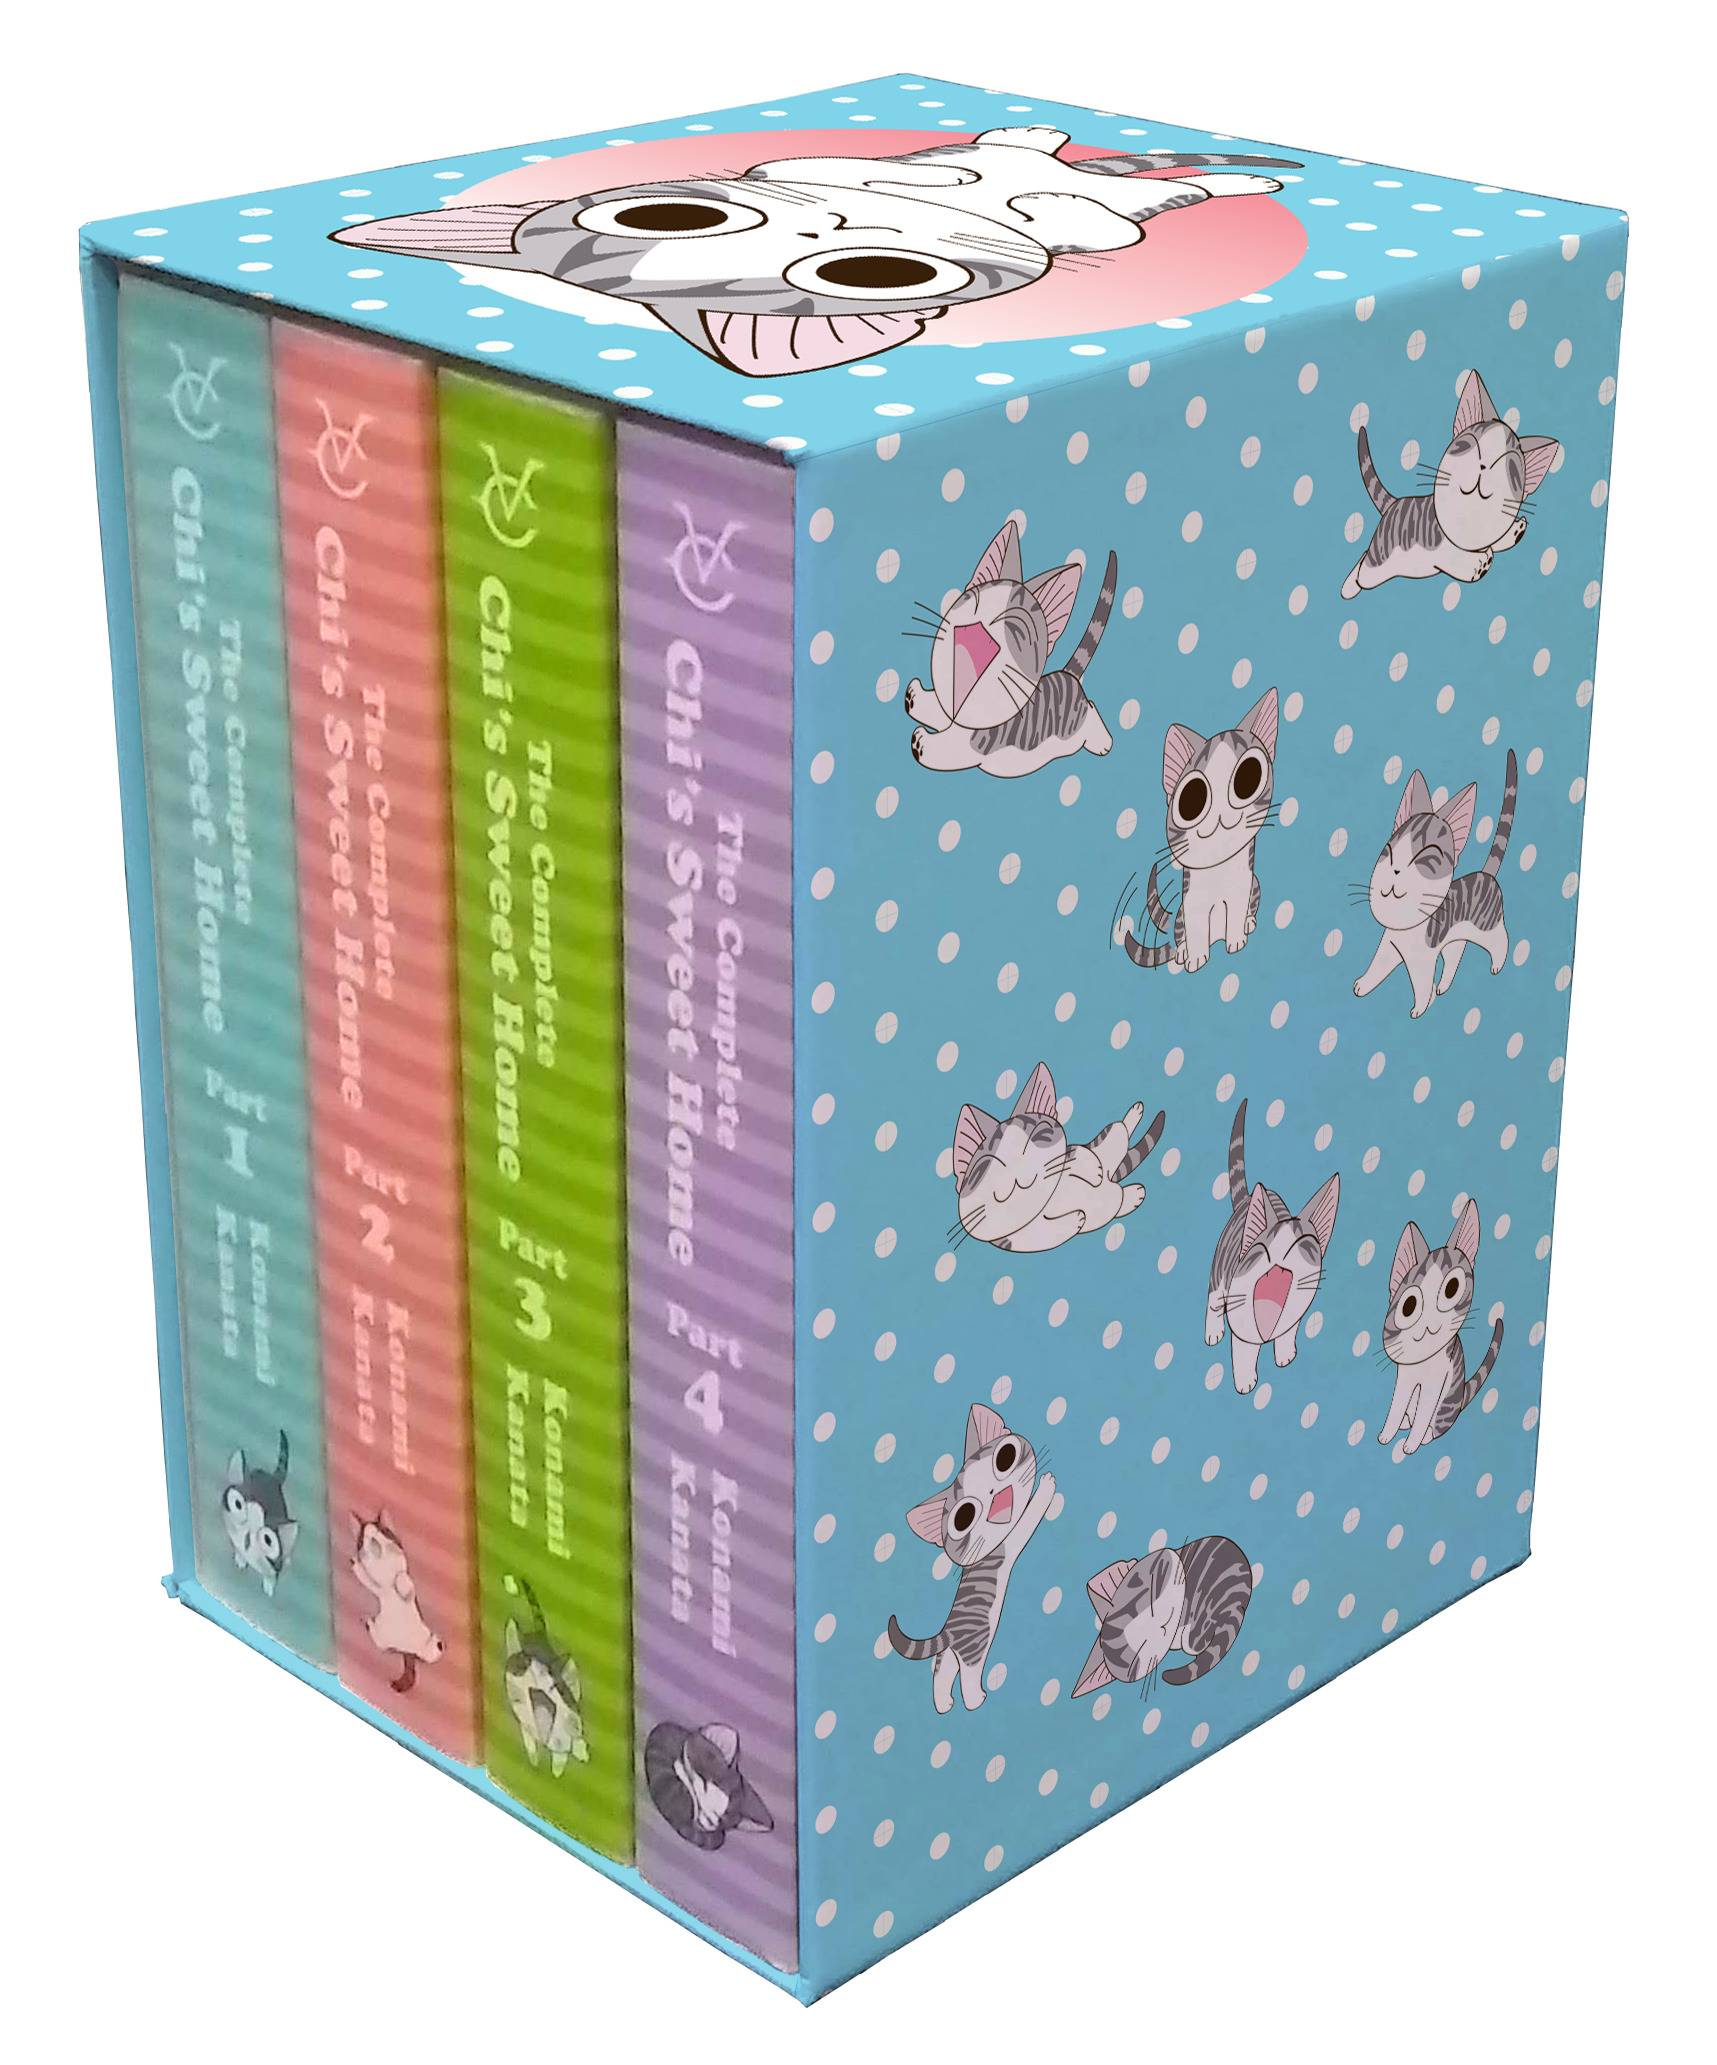 COMPLETE CHIS SWEET HOME BOX SET